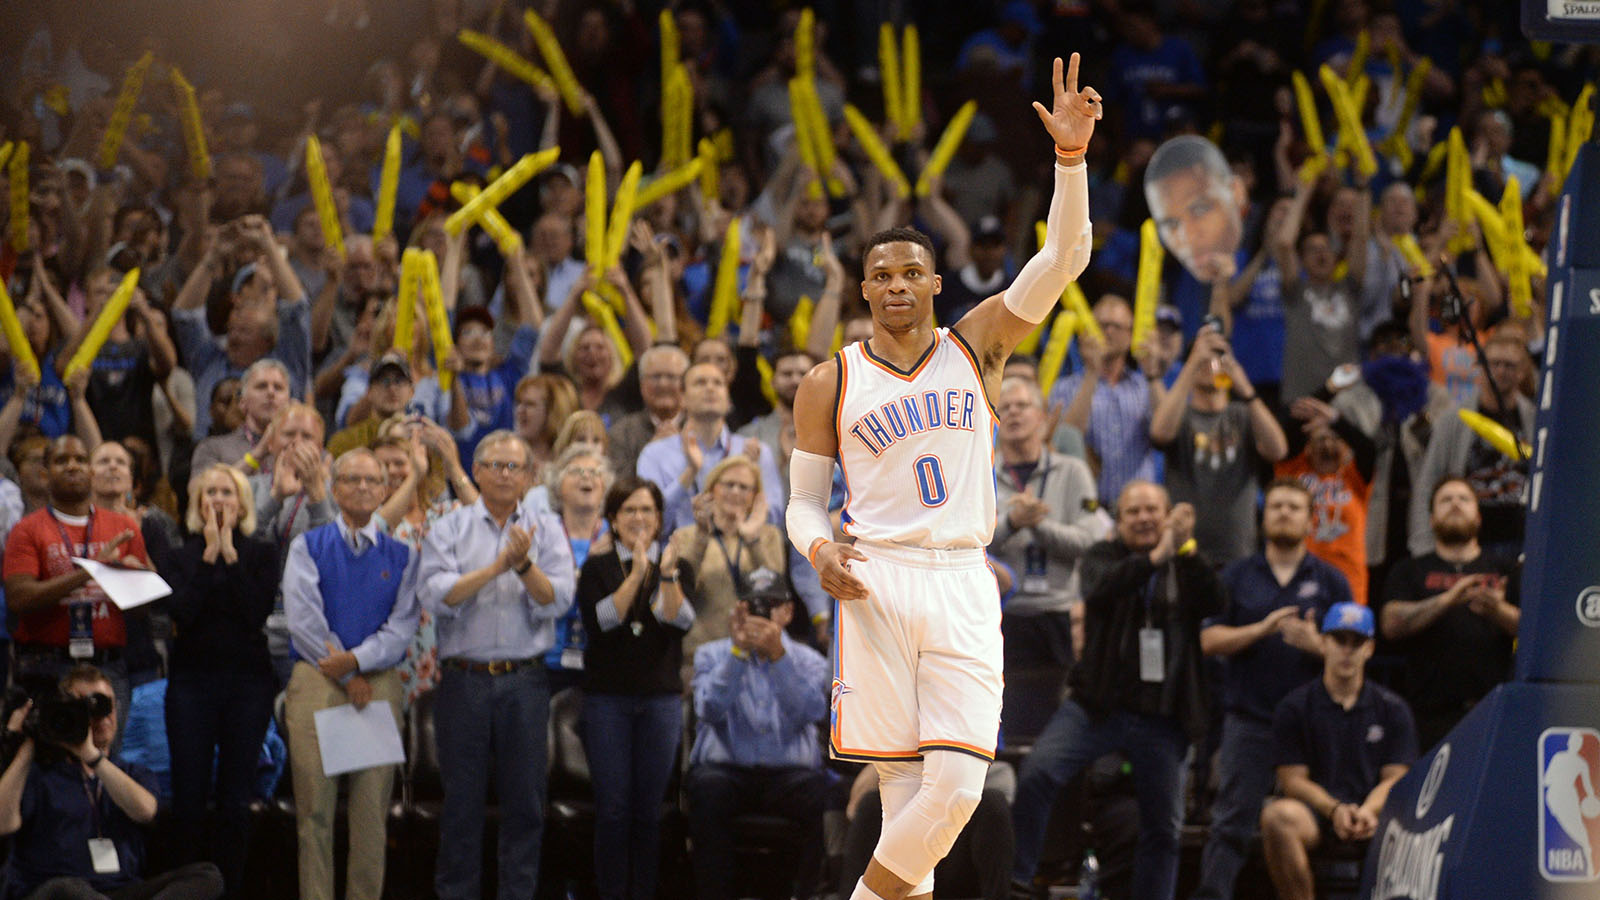 Apr 4, 2017; Oklahoma City, OK, USA; Oklahoma City Thunder guard Russell Westbrook (0) reacts as it announced that he has tied the season triple double record in action against the Milwaukee Bucks at Chesapeake Energy Arena. Mandatory Credit: Mark D. Smith-USA TODAY Sports